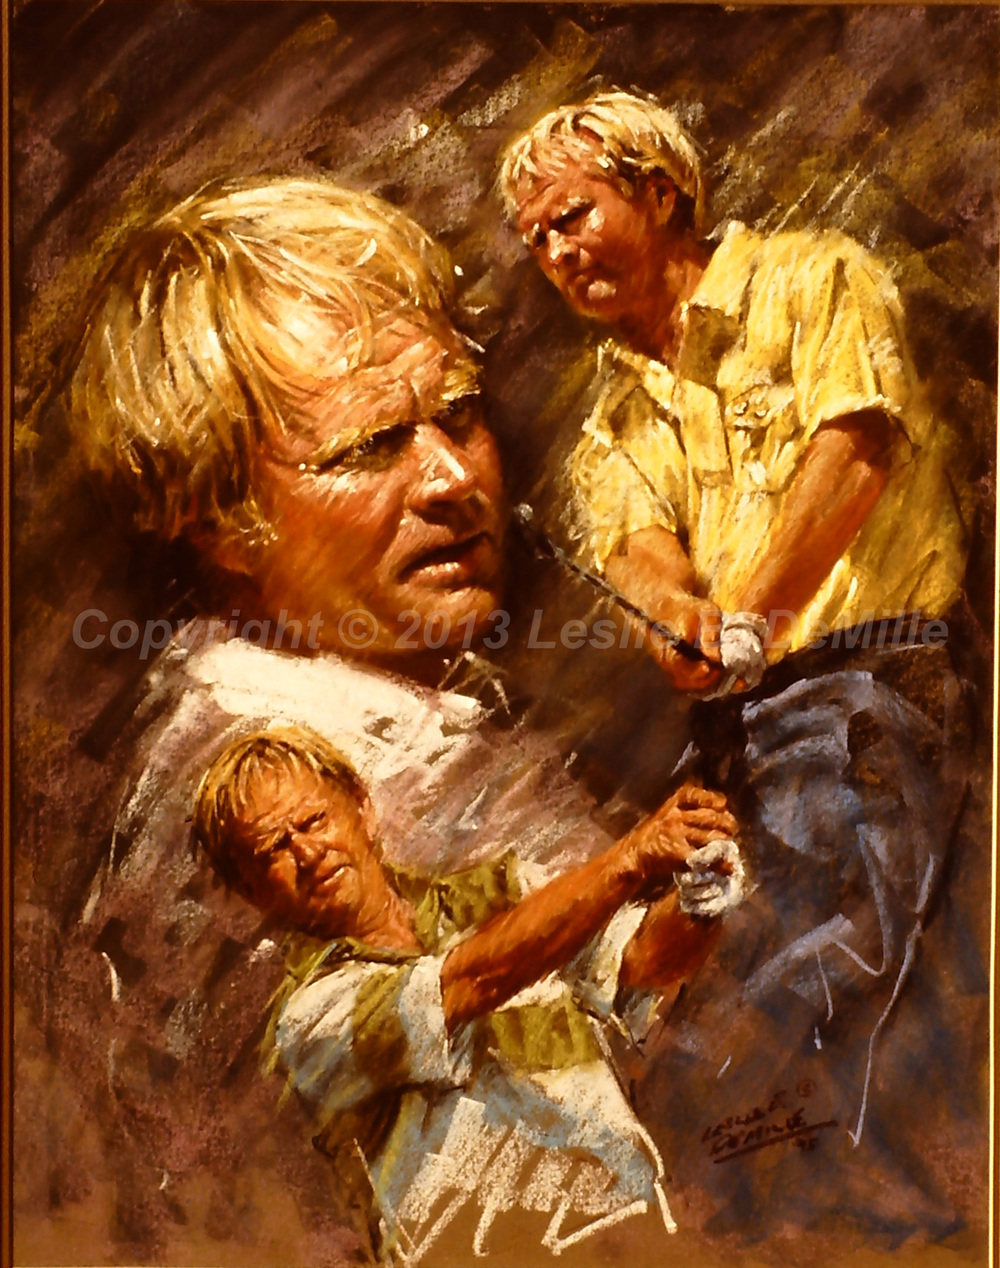 Jack Nicklaus: The Golden Bear, Oil 1994 (11x14)